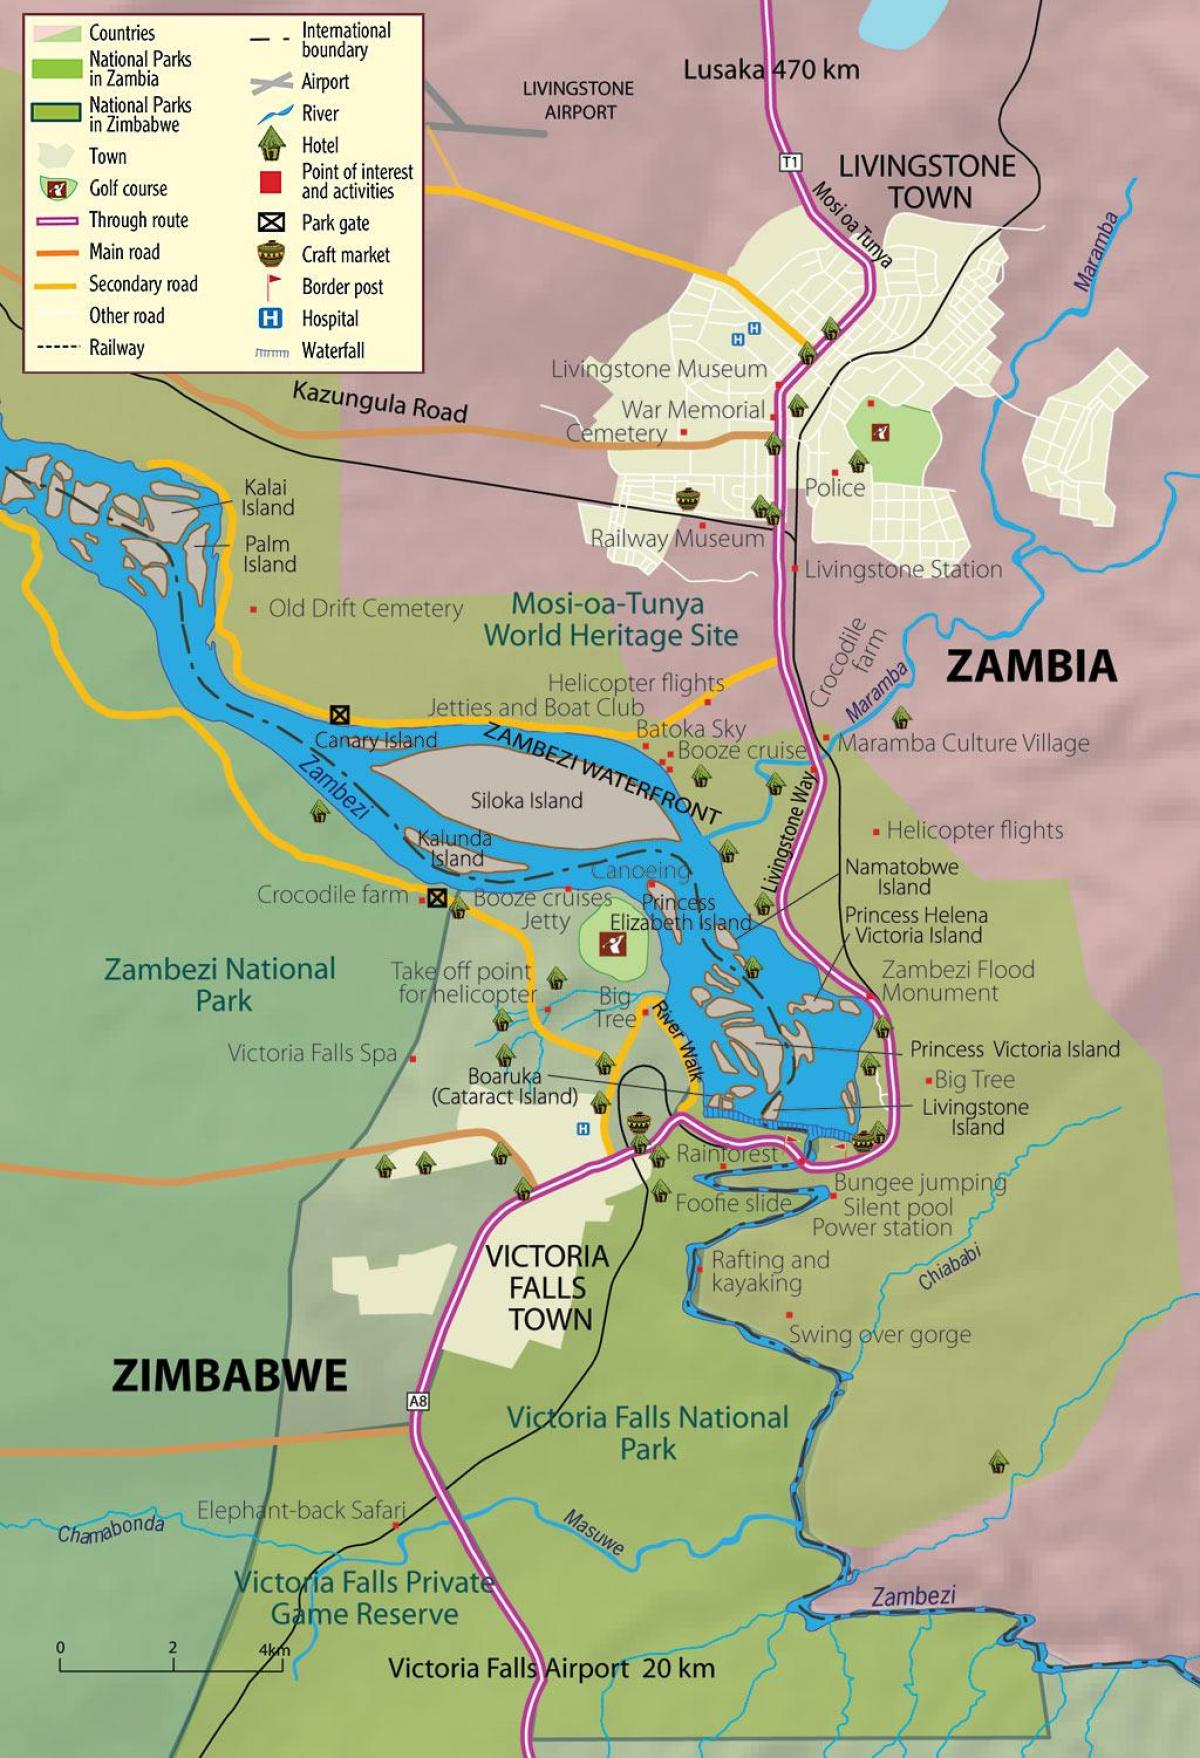 map of livingstone town Zambia